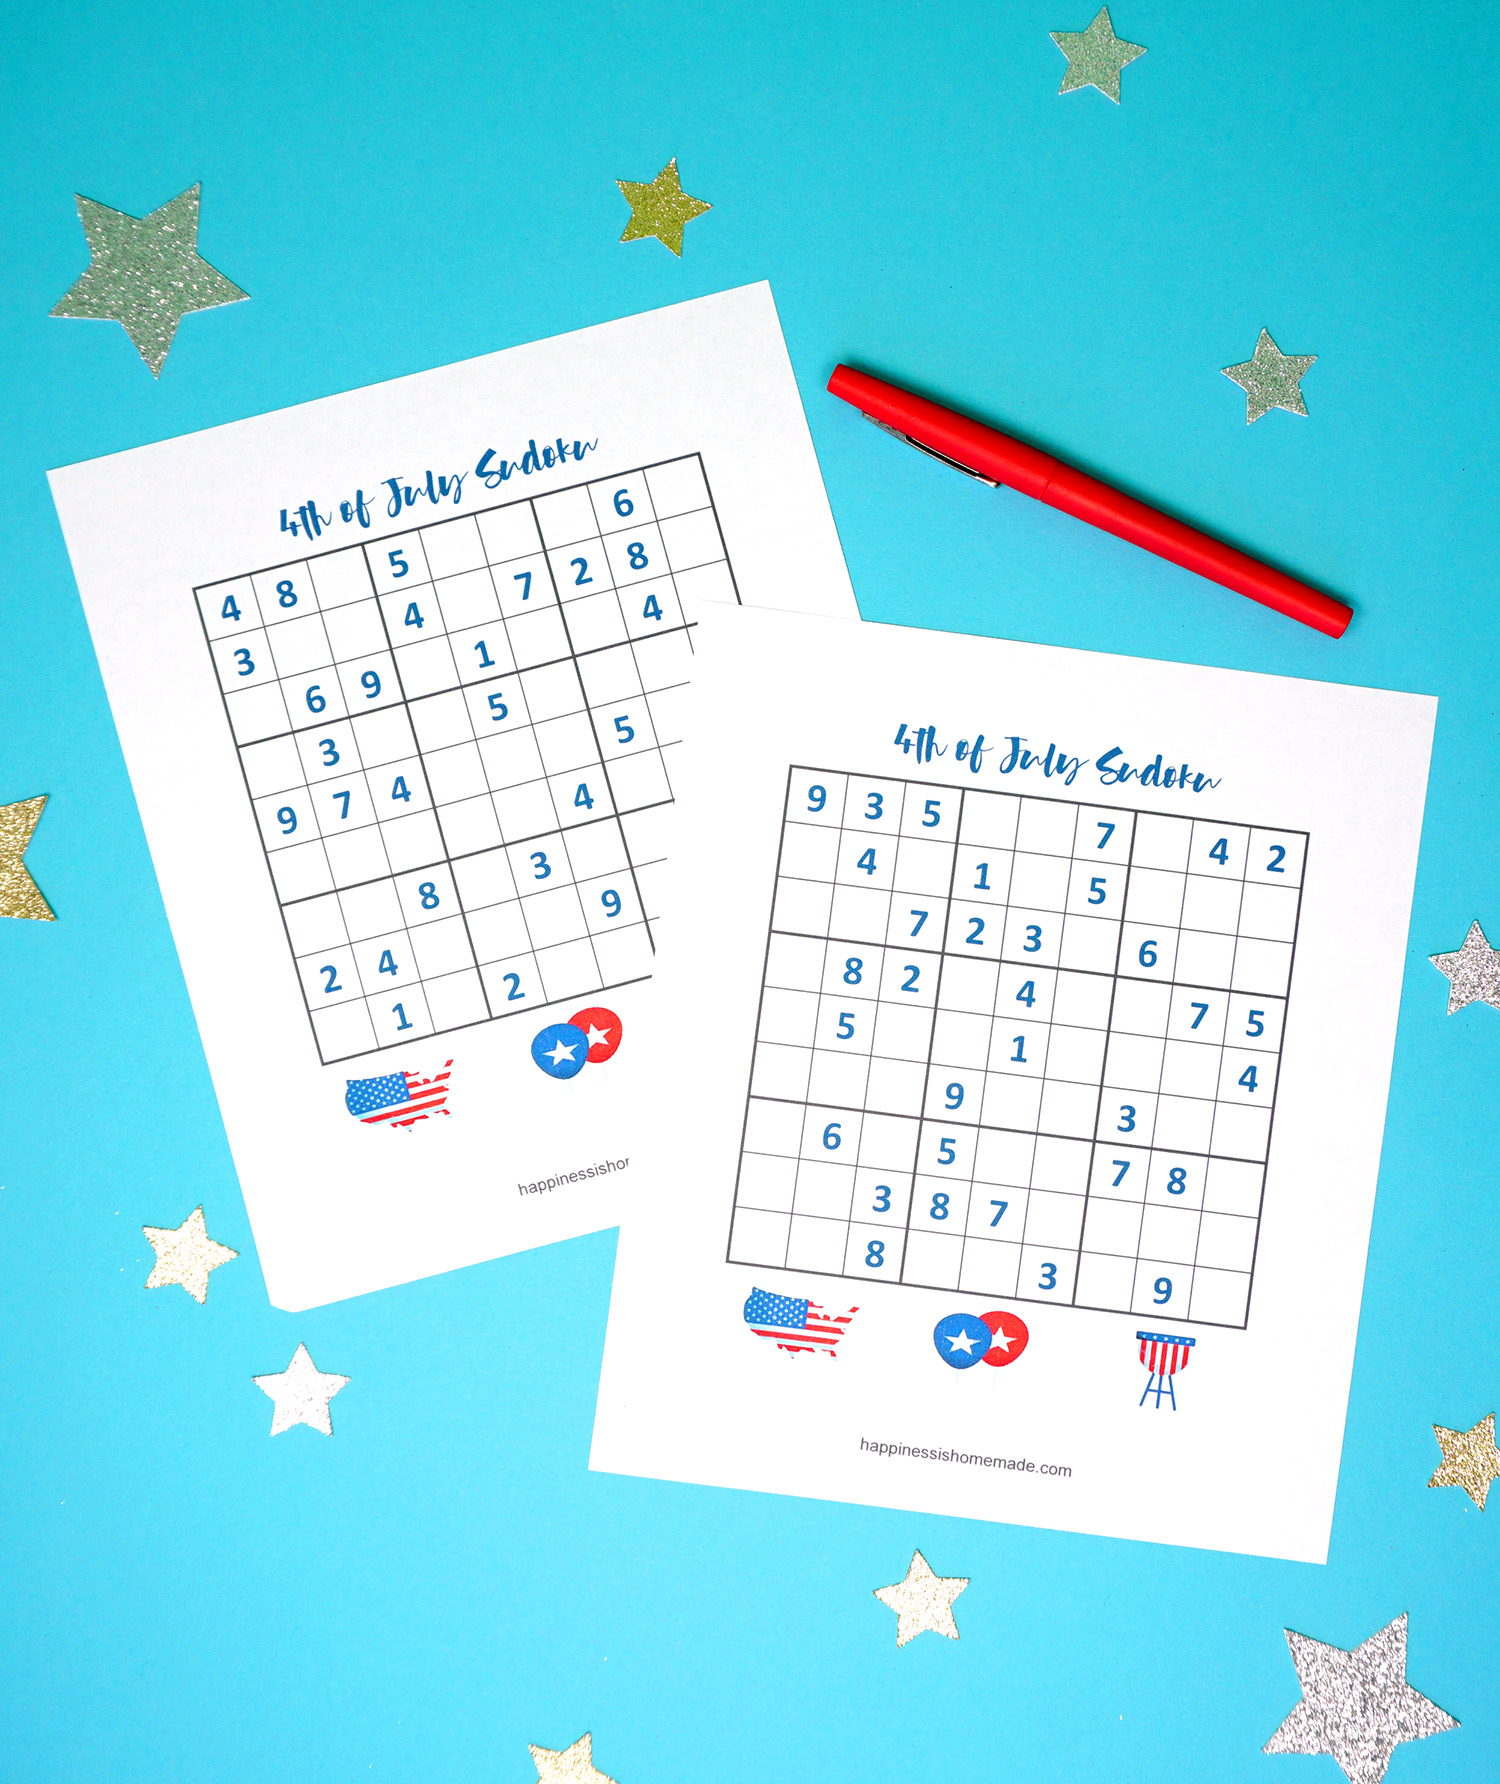 Dashing Easy Logic Puzzles Printable